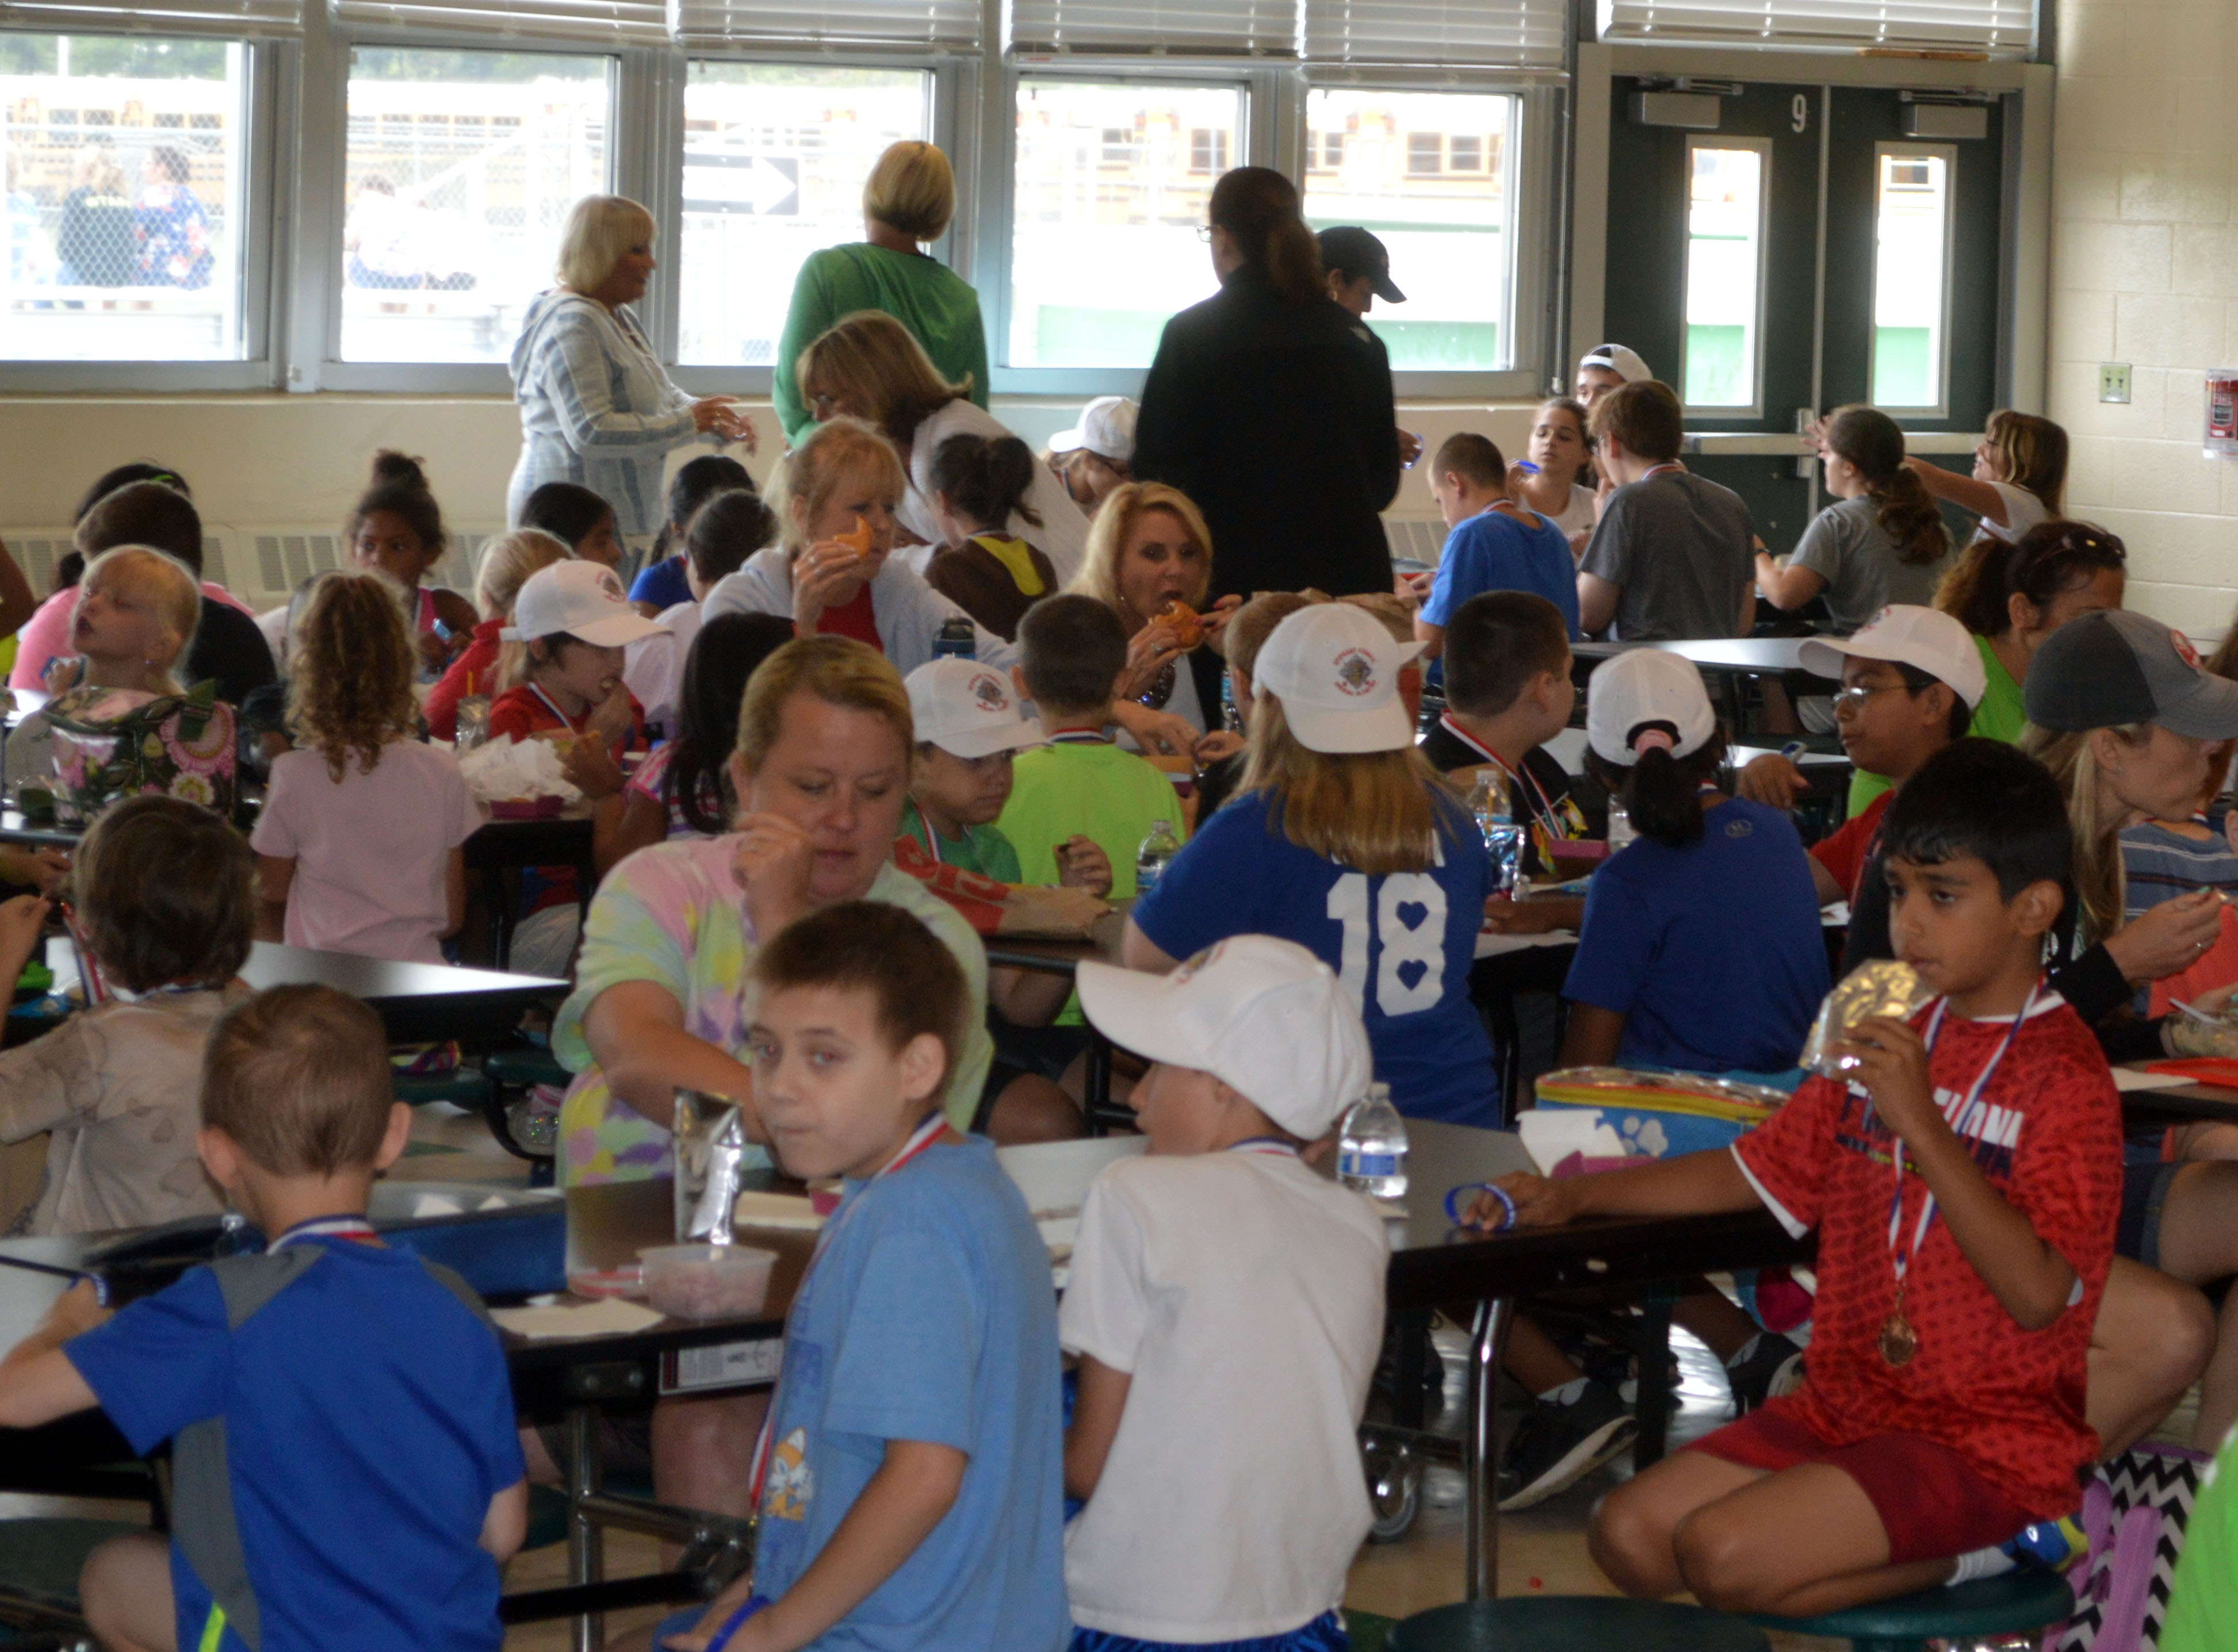 Students at Brick's BASE Camp program enjoying lunch provided by the Knights of Columbus Council 8160. (Photo: Daniel Nee)